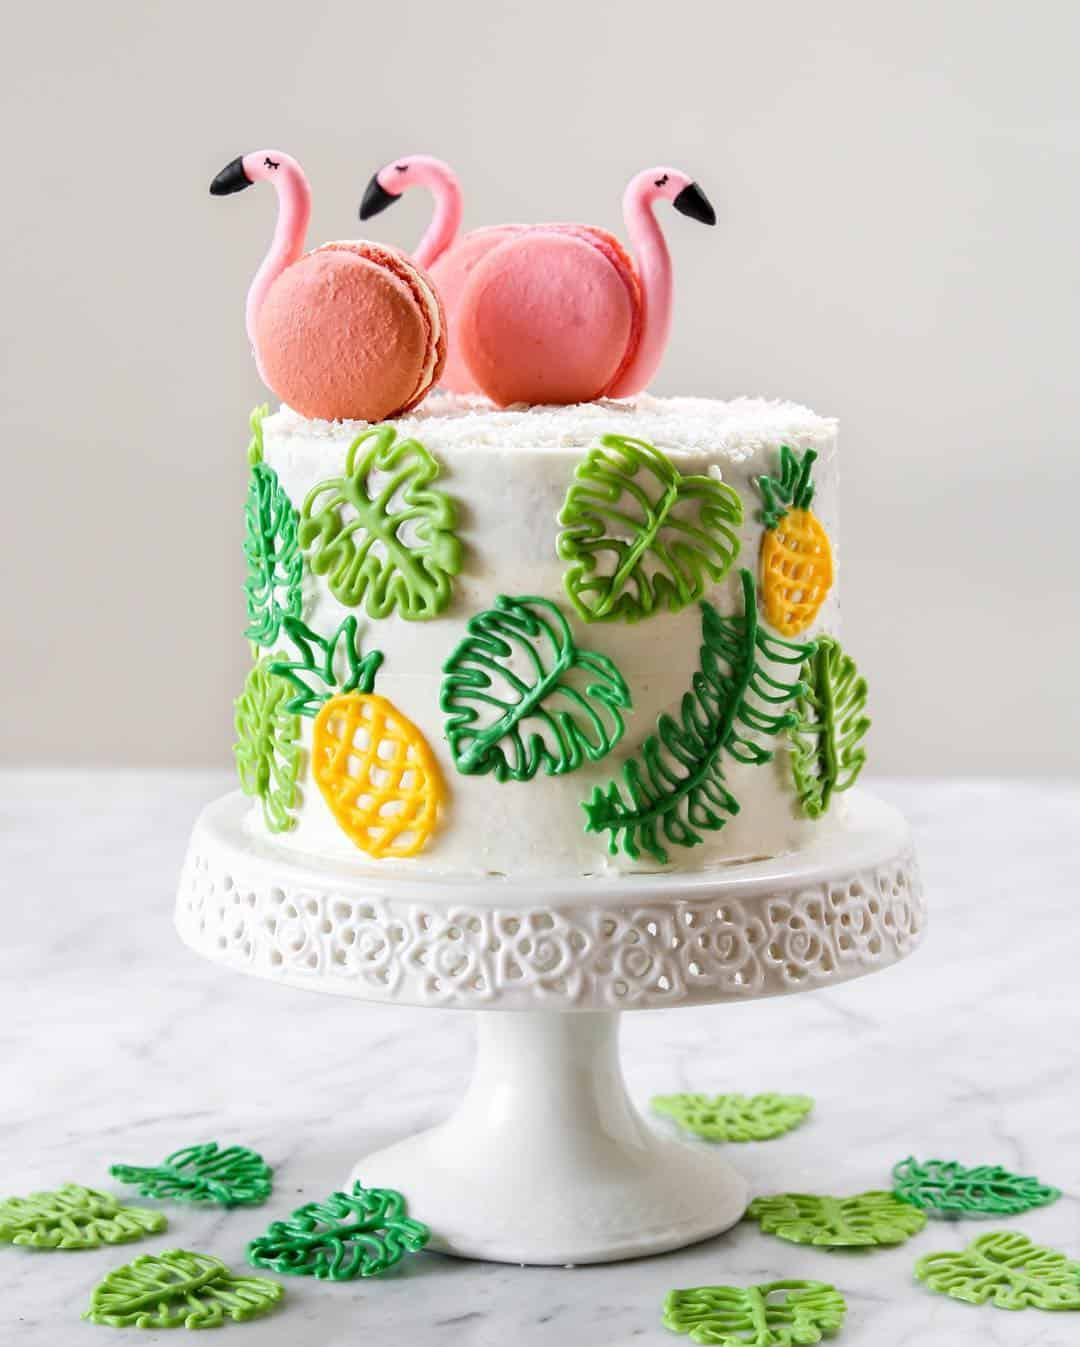 Imaginative Pastry Designs by Amy Ho